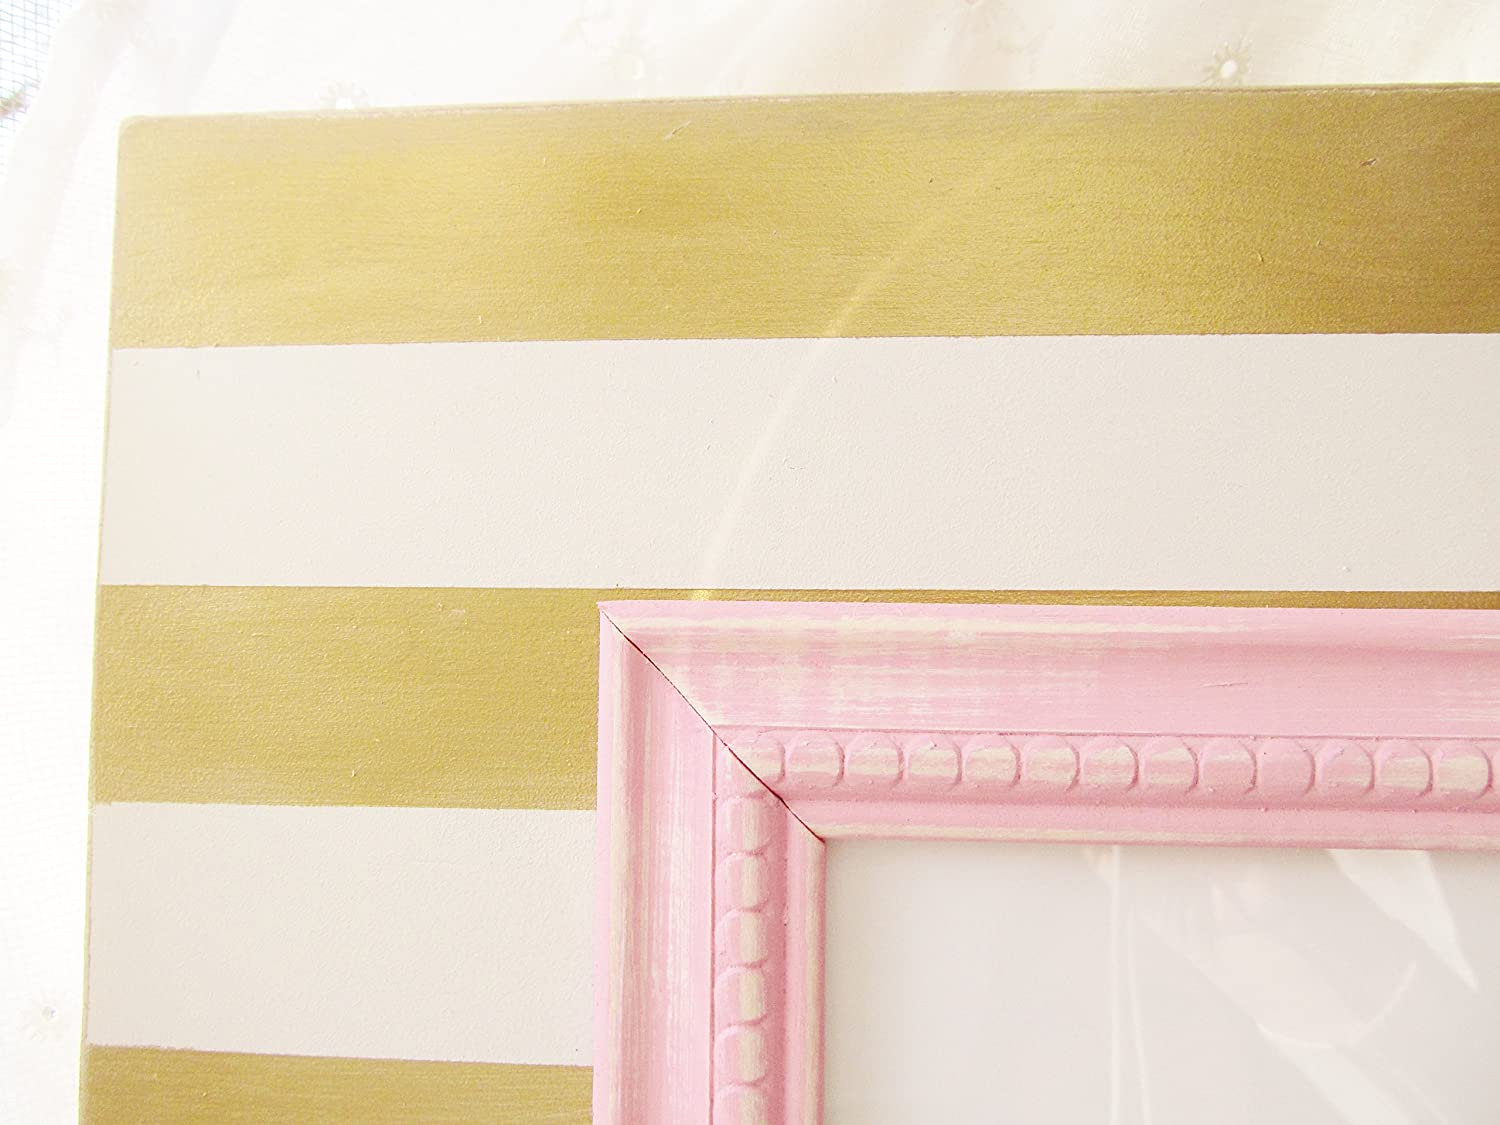 Amazon.com: Shabby Chic Picture Frame in Gold and White Stripes with ...